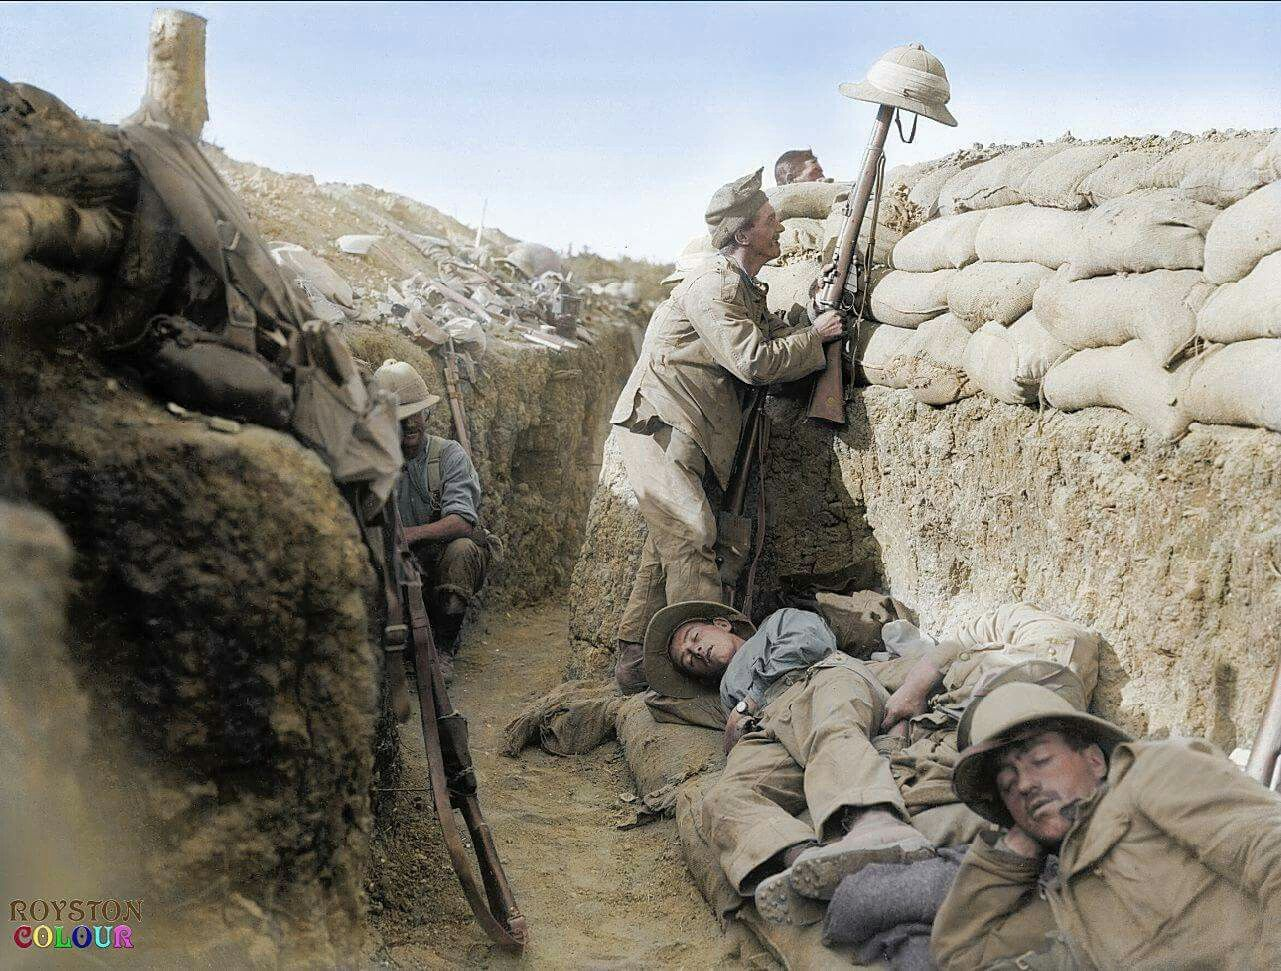 A Royal Irish Fusilier attempts to draw the fire of a Turkish sniper to reveal the enemy position, Gallipoli, 1915. The 1st Battalion The Royal Inniskilling Fusiliers was involved in the initial landings at Gallipoli on 25 April 1915 and throughout the hard-fought nine-month campaign, as part of 29th Division.